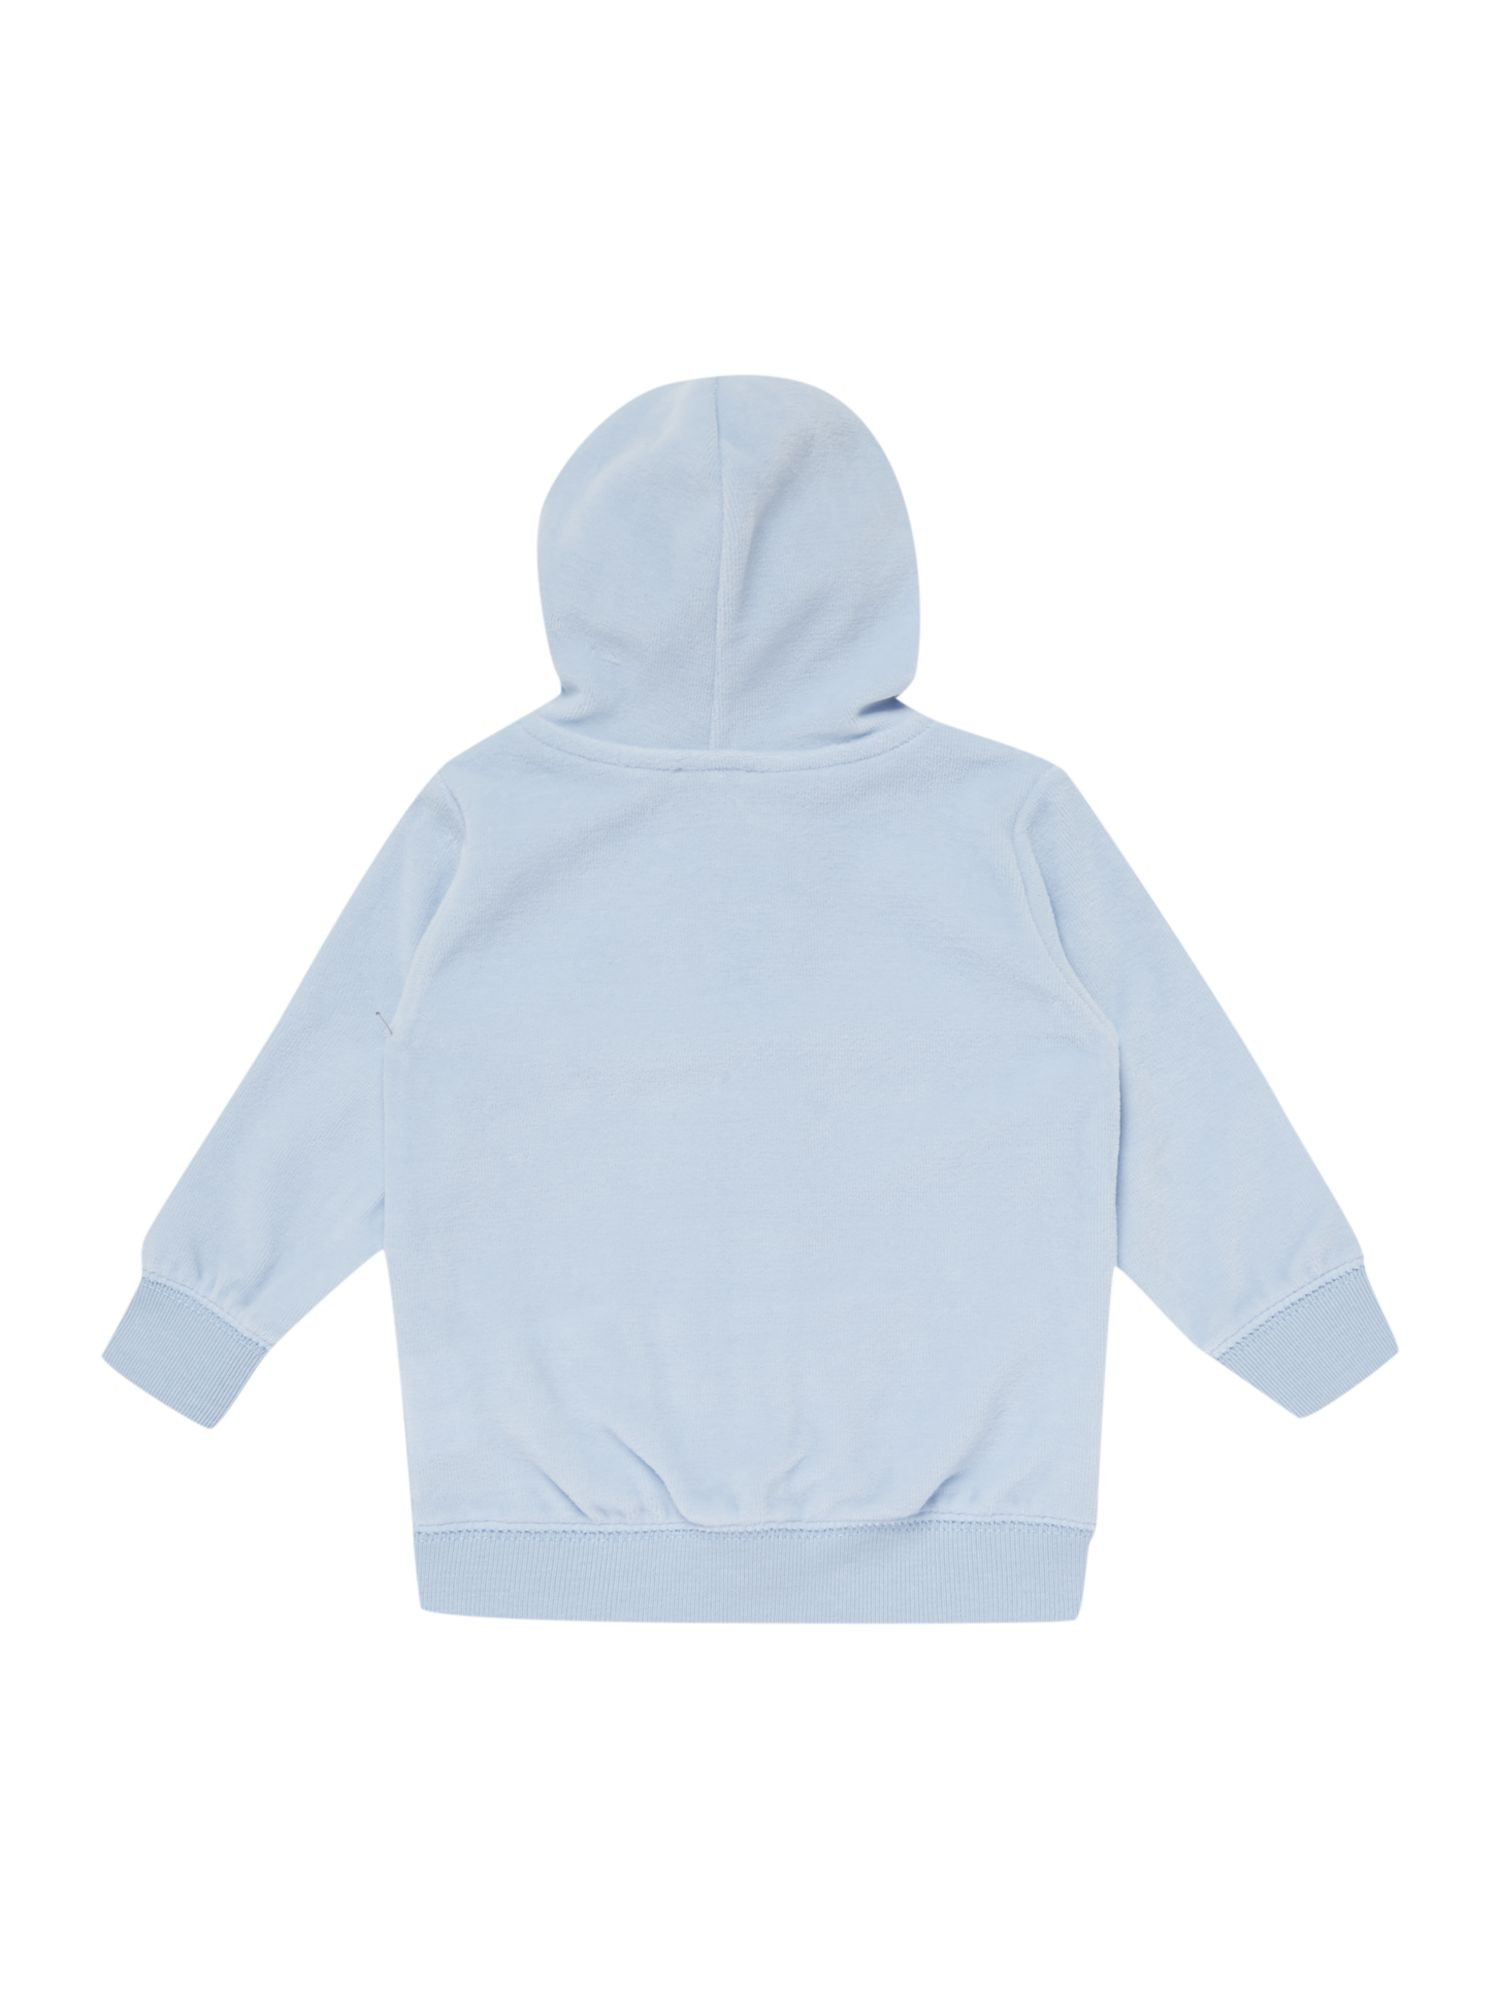 Baby boy velour hooded tracksuit top